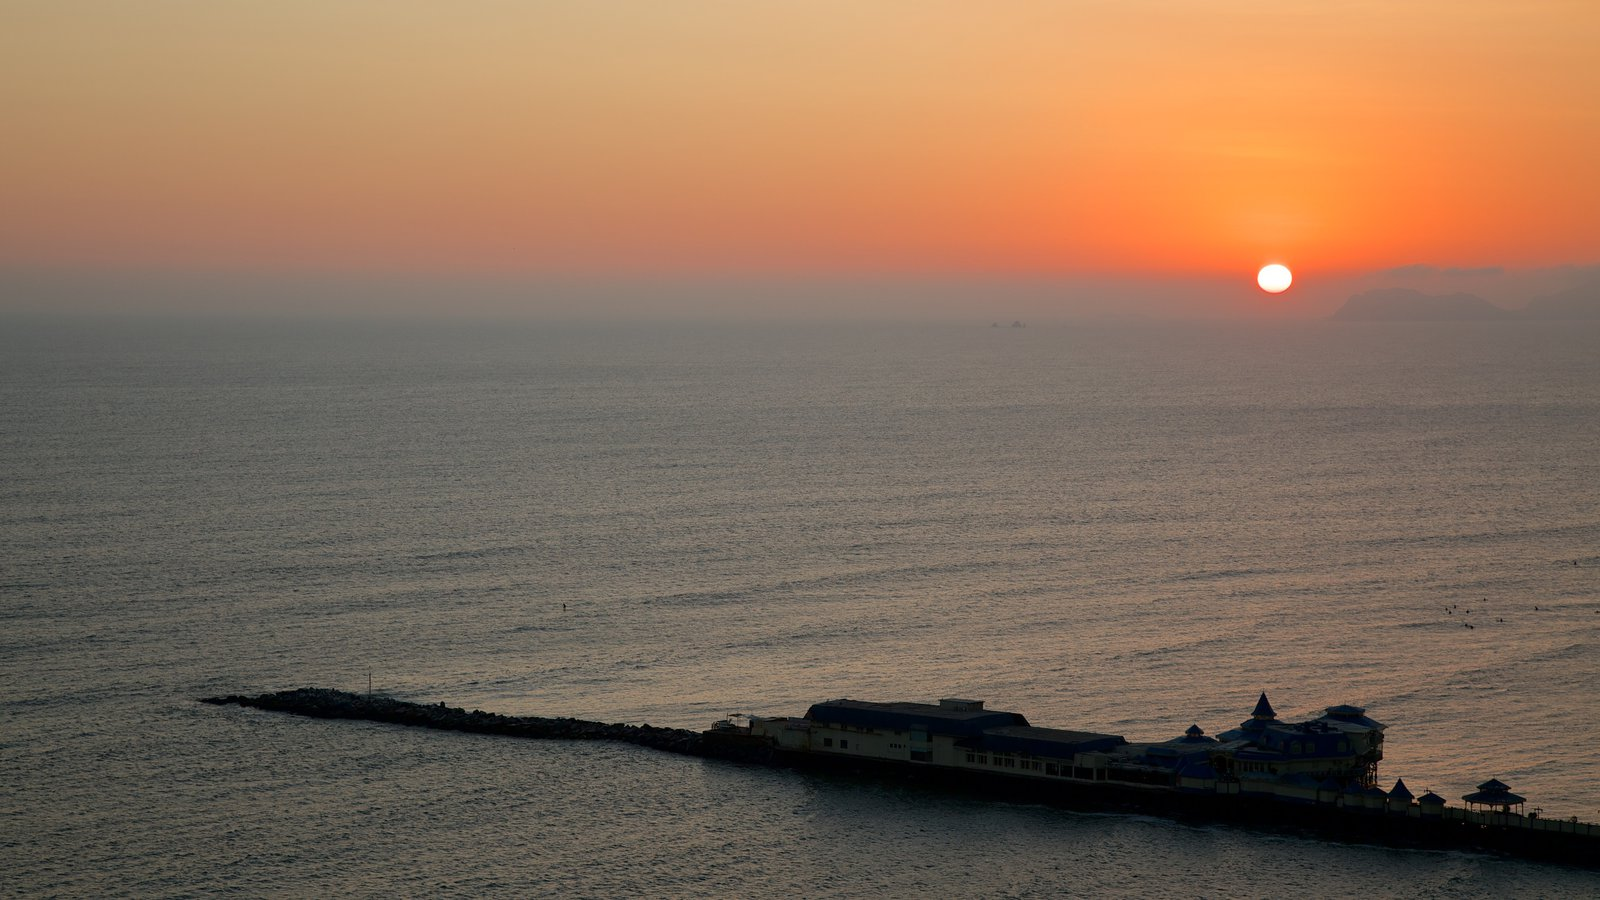 Lima showing a sunset and general coastal views